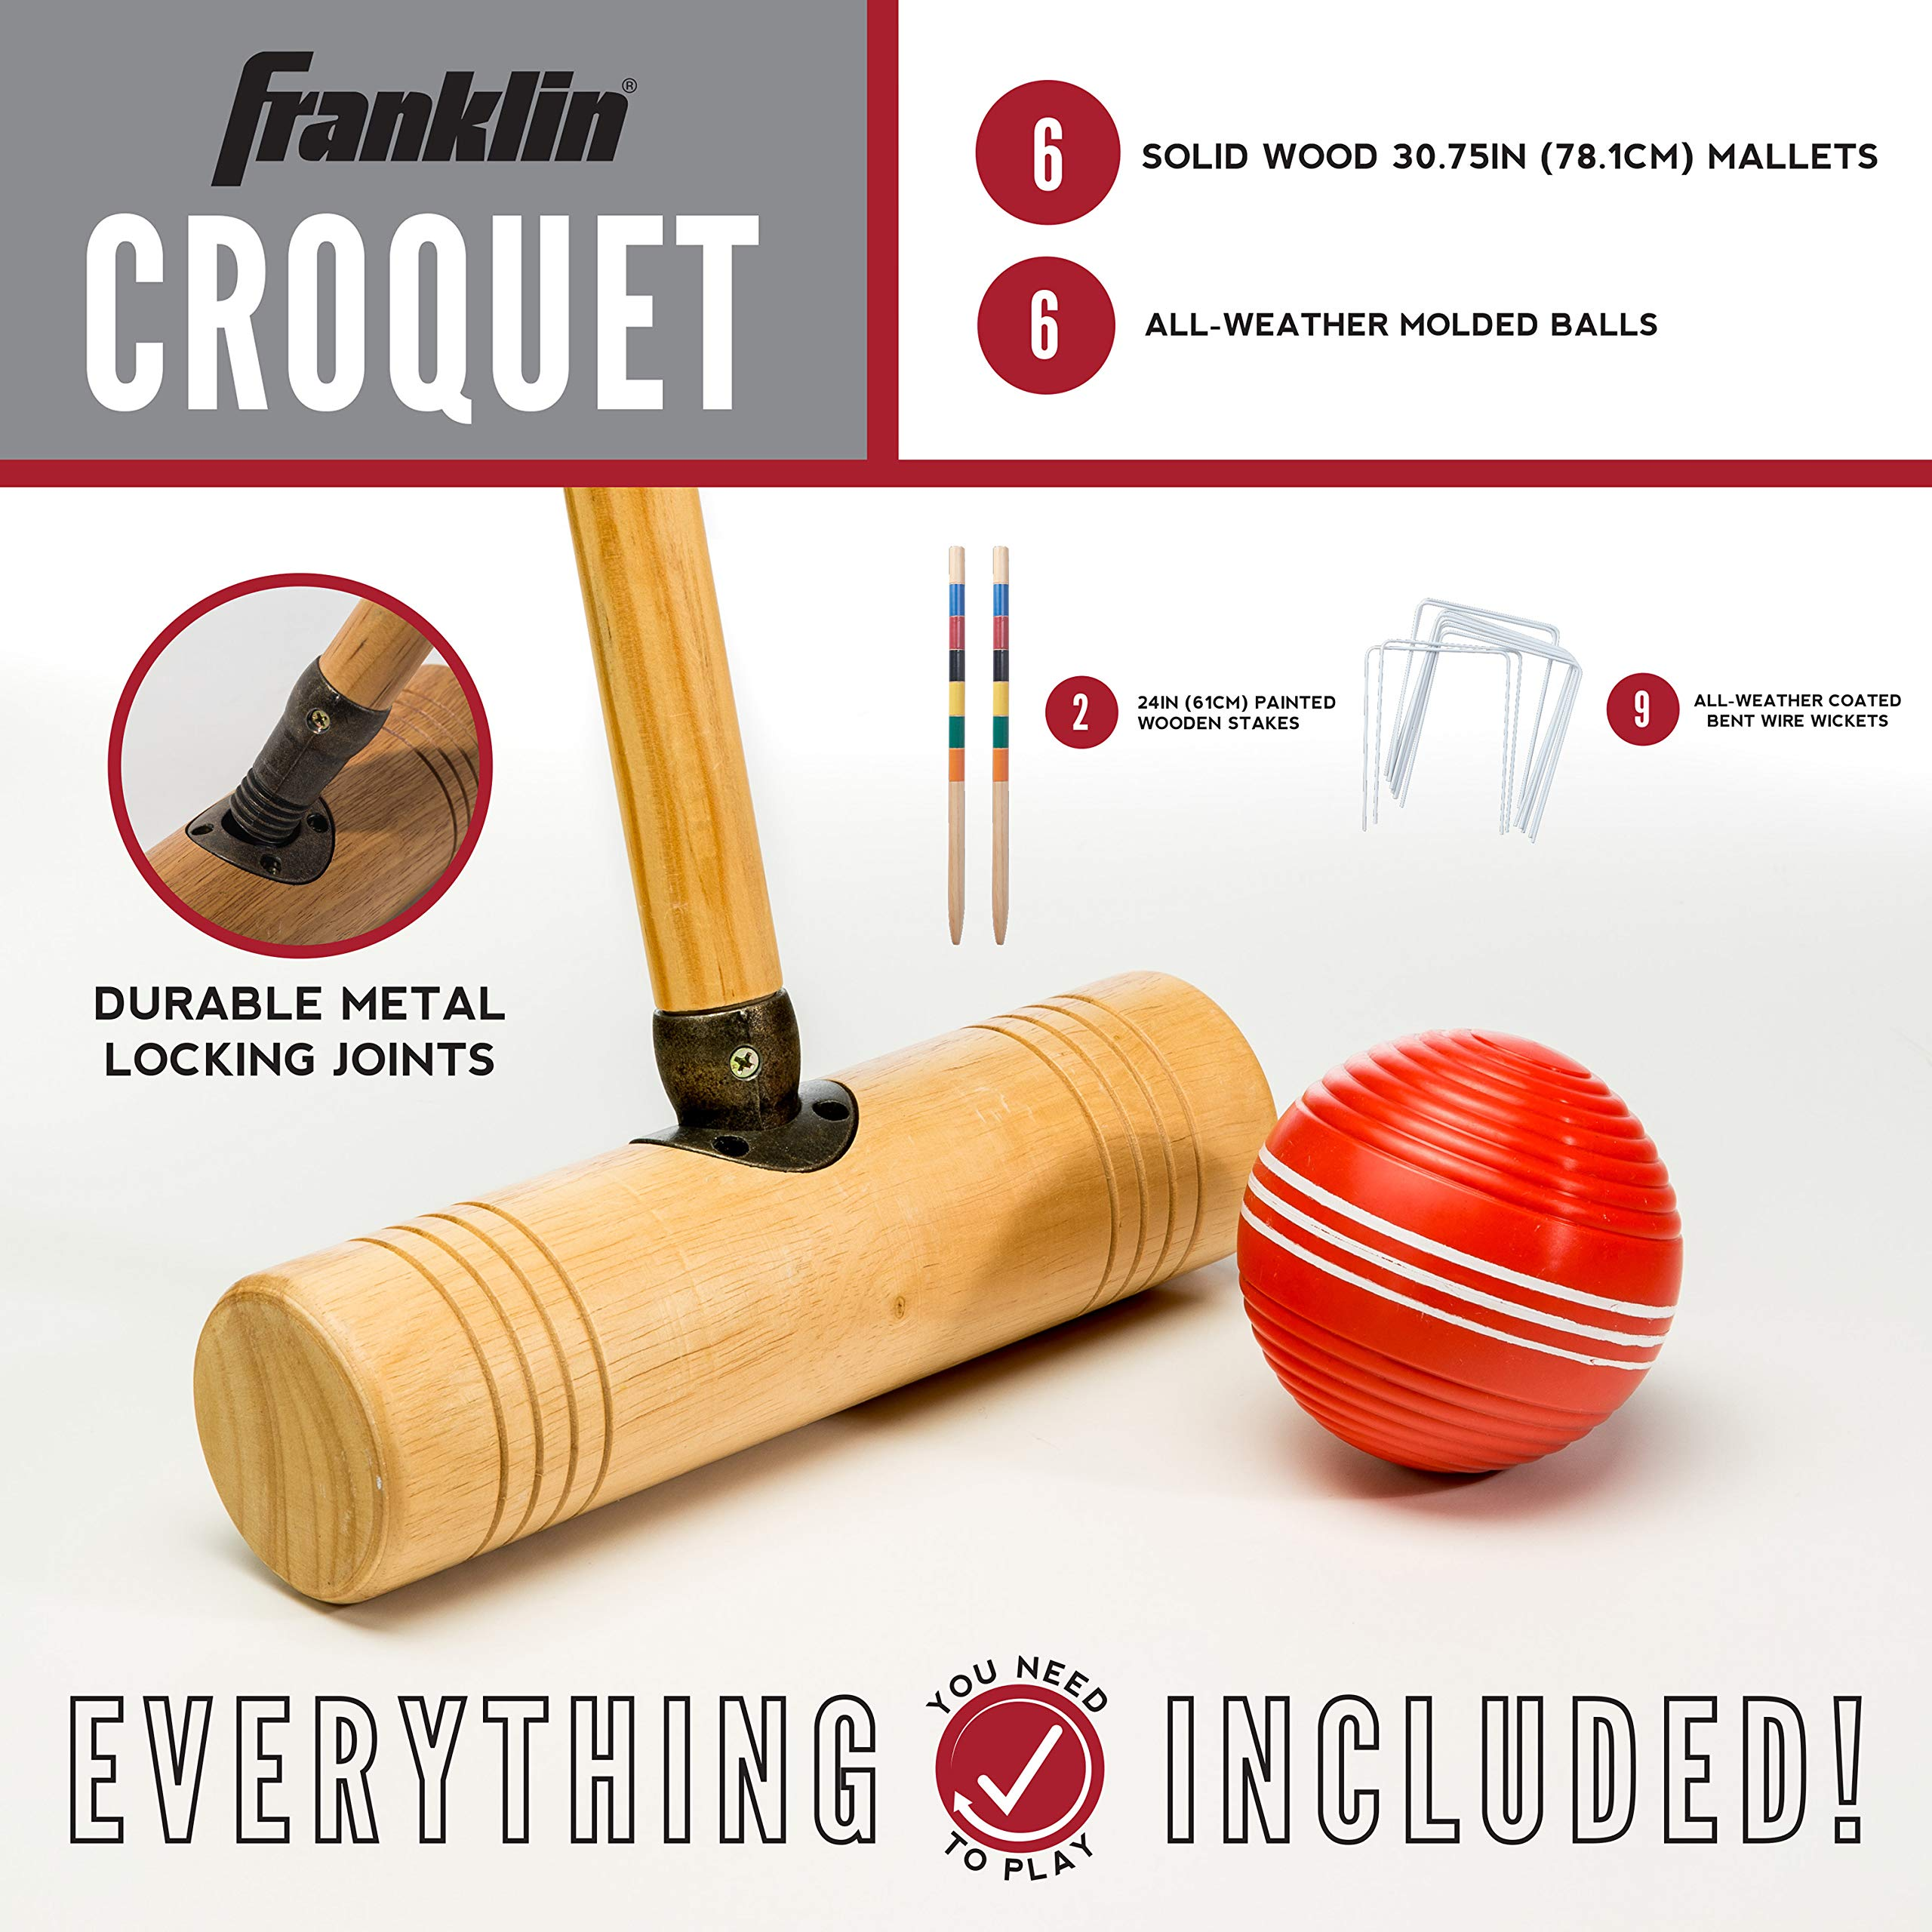 Franklin Sports Croquet Set - Up to 6 Players - Professional Quality Croquet Set for Lawn Games - Complete Croquet Set with Carrying Case - Includes Wooden Mallets, Durable Balls, Weatherproof Wickets by Franklin Sports (Image #2)